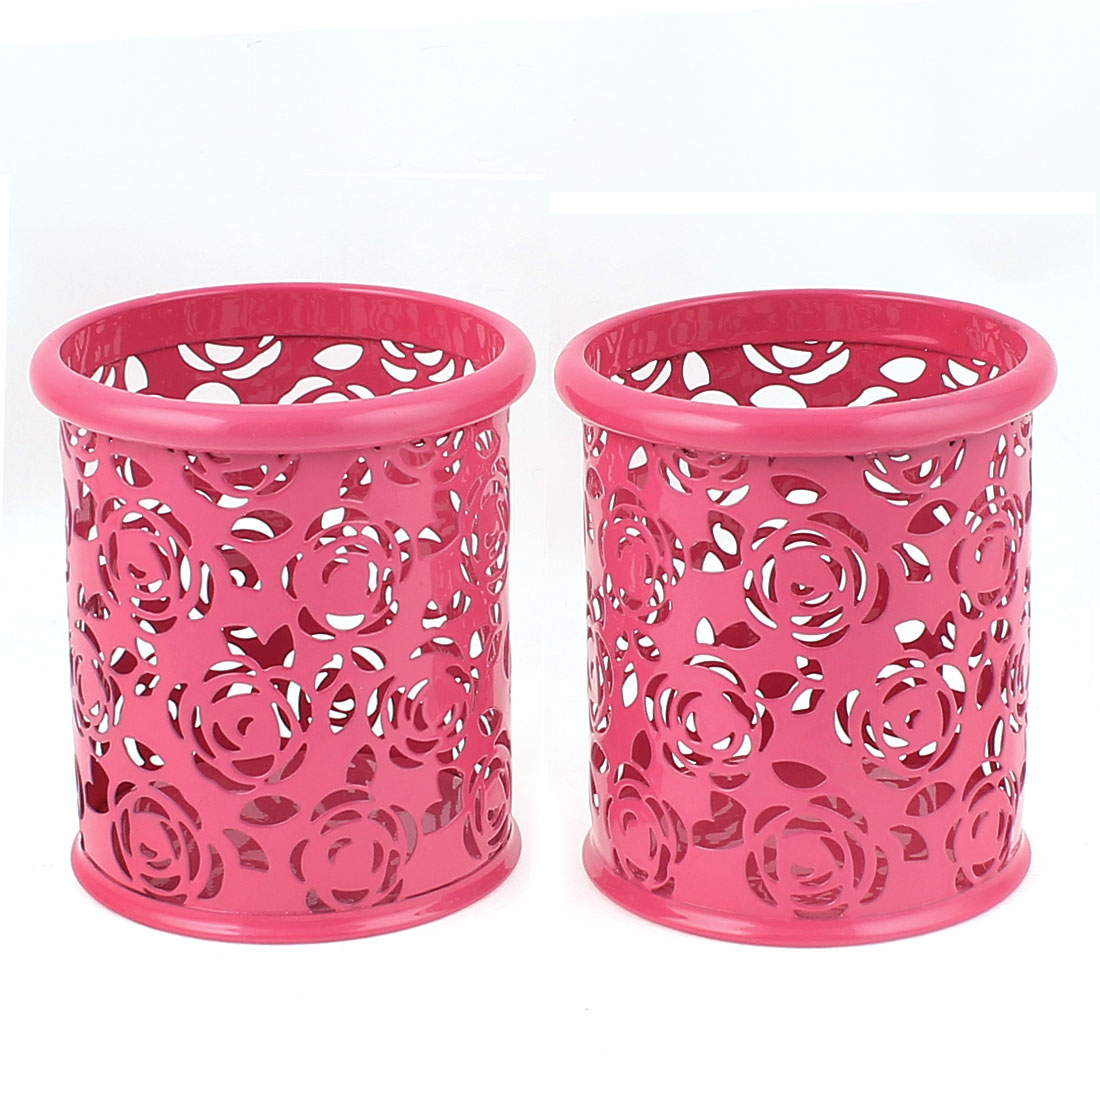 Metallic Cylinder Shaped Stationery Pen Holder Box Container Pink 2Pcs